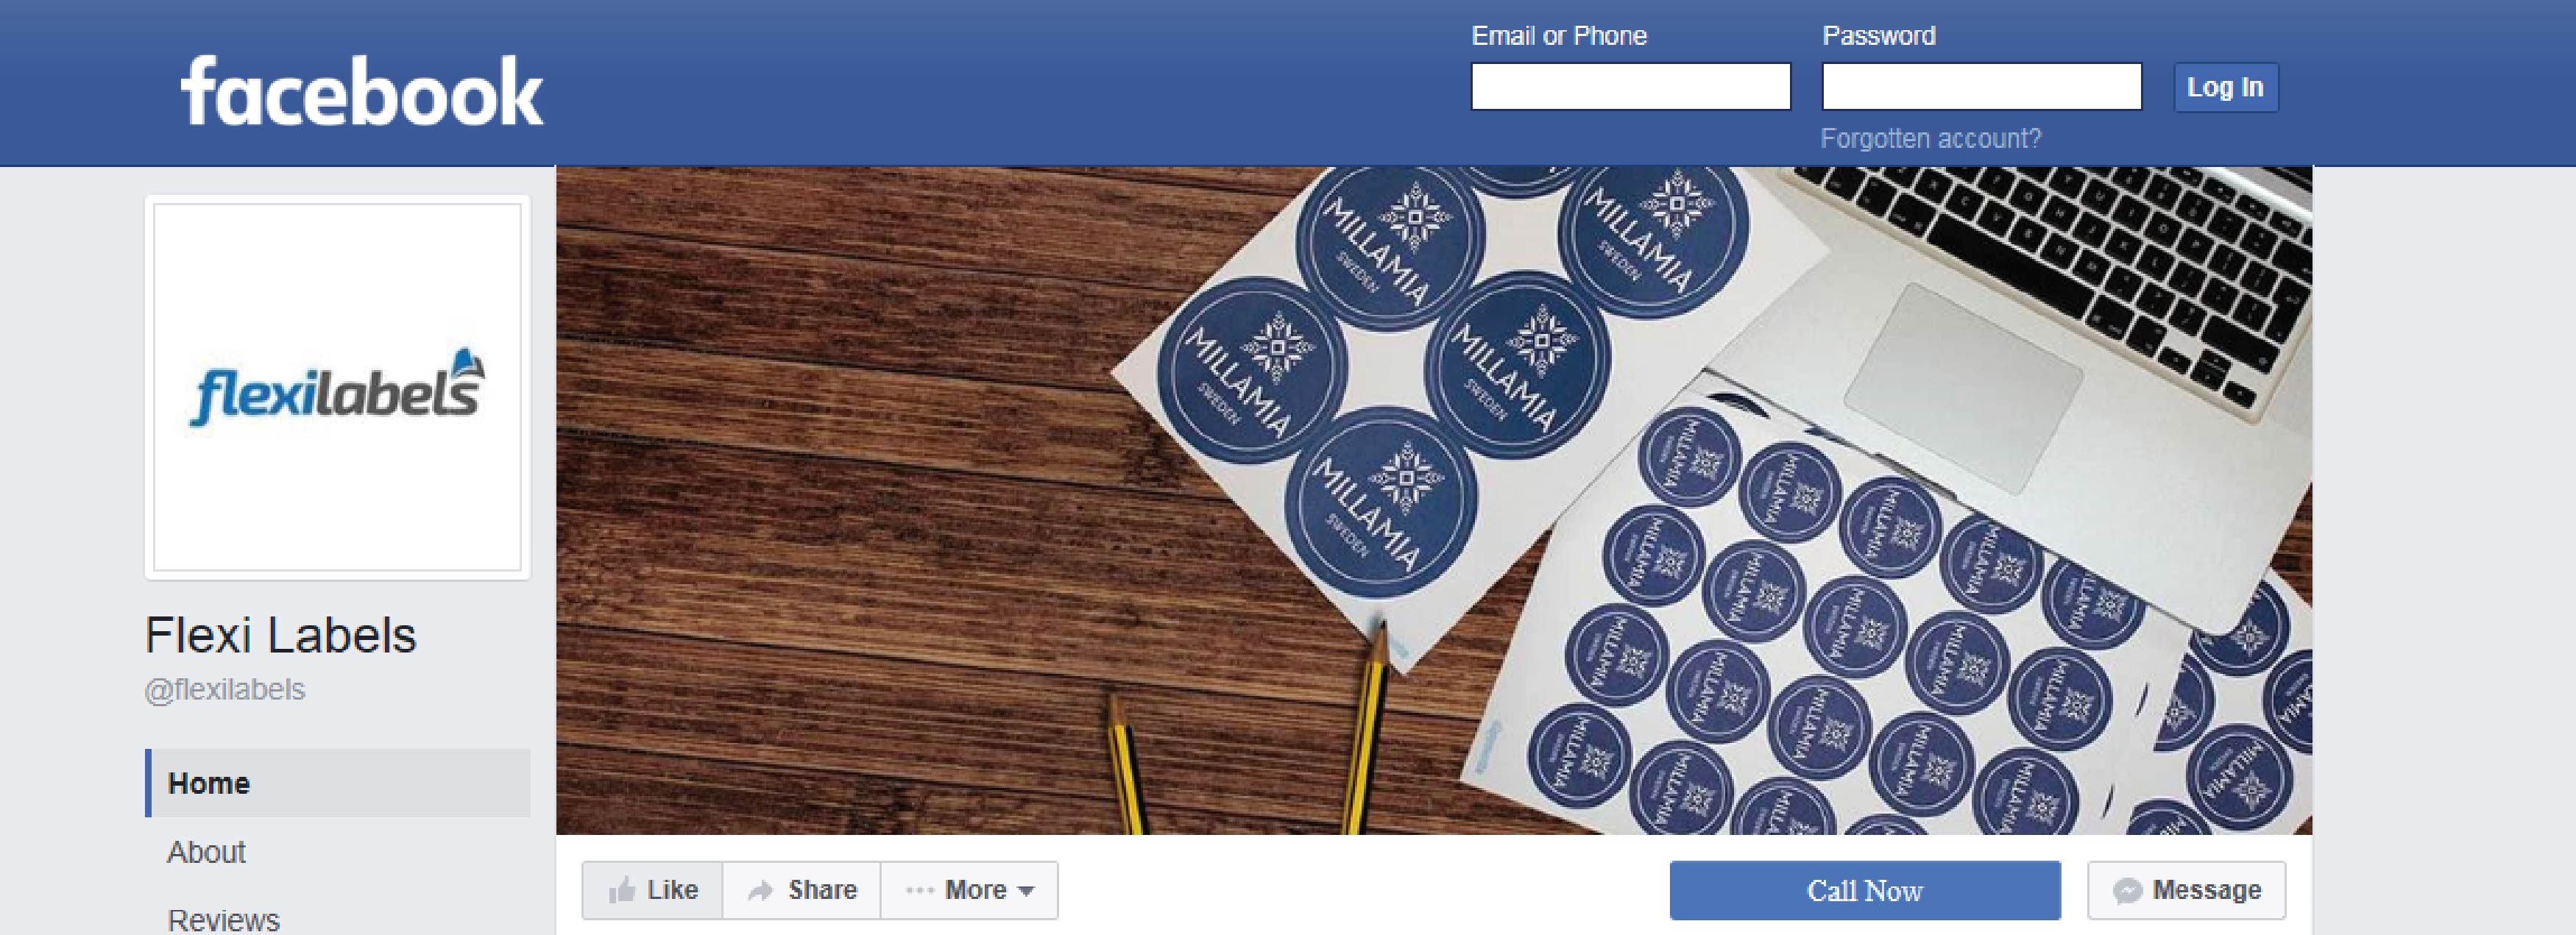 Follow Flexi Labels on Facebook!